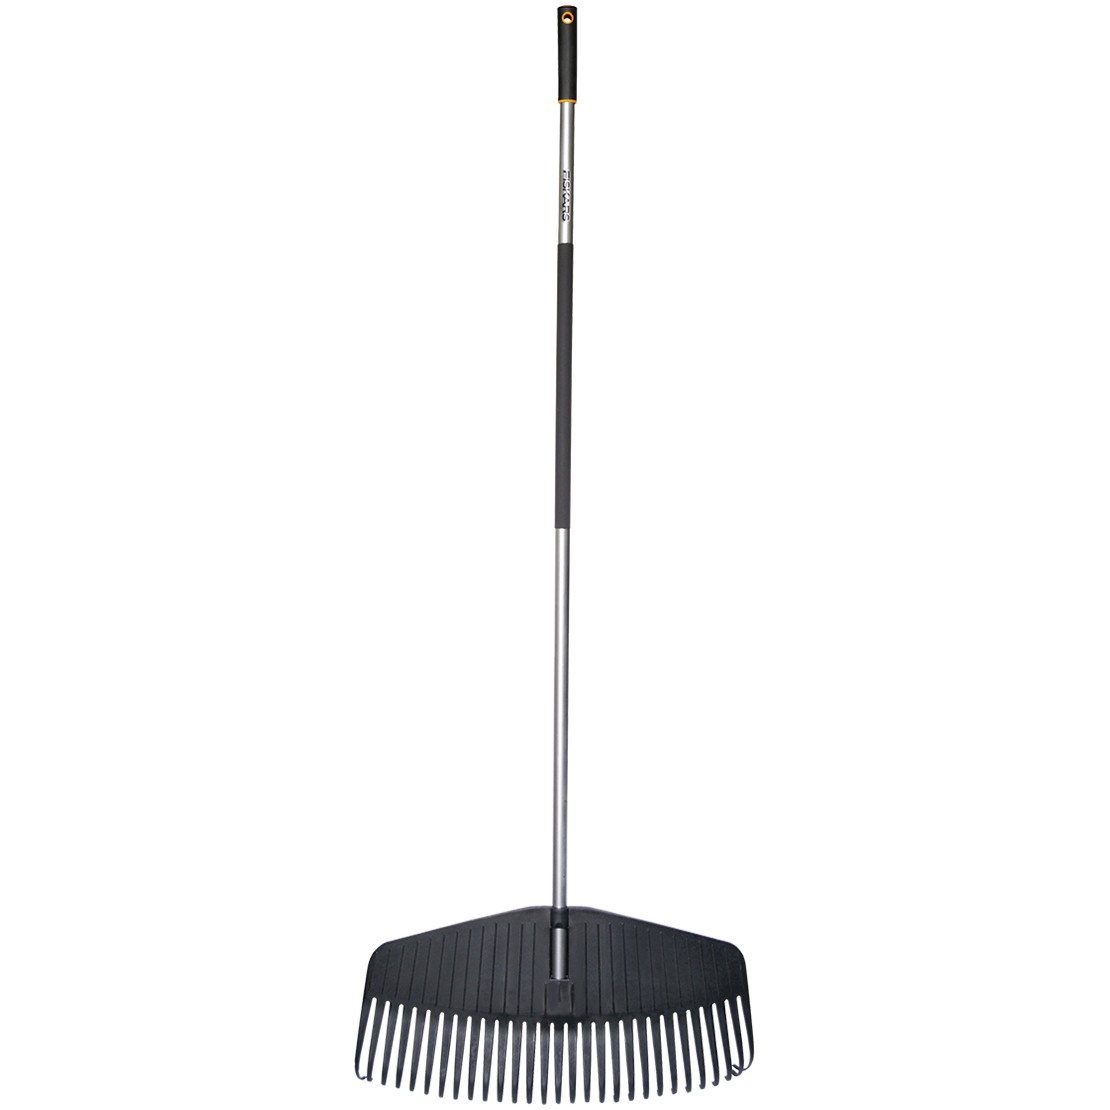 Fiskars garden light large lawn rake for Large rake garden tool